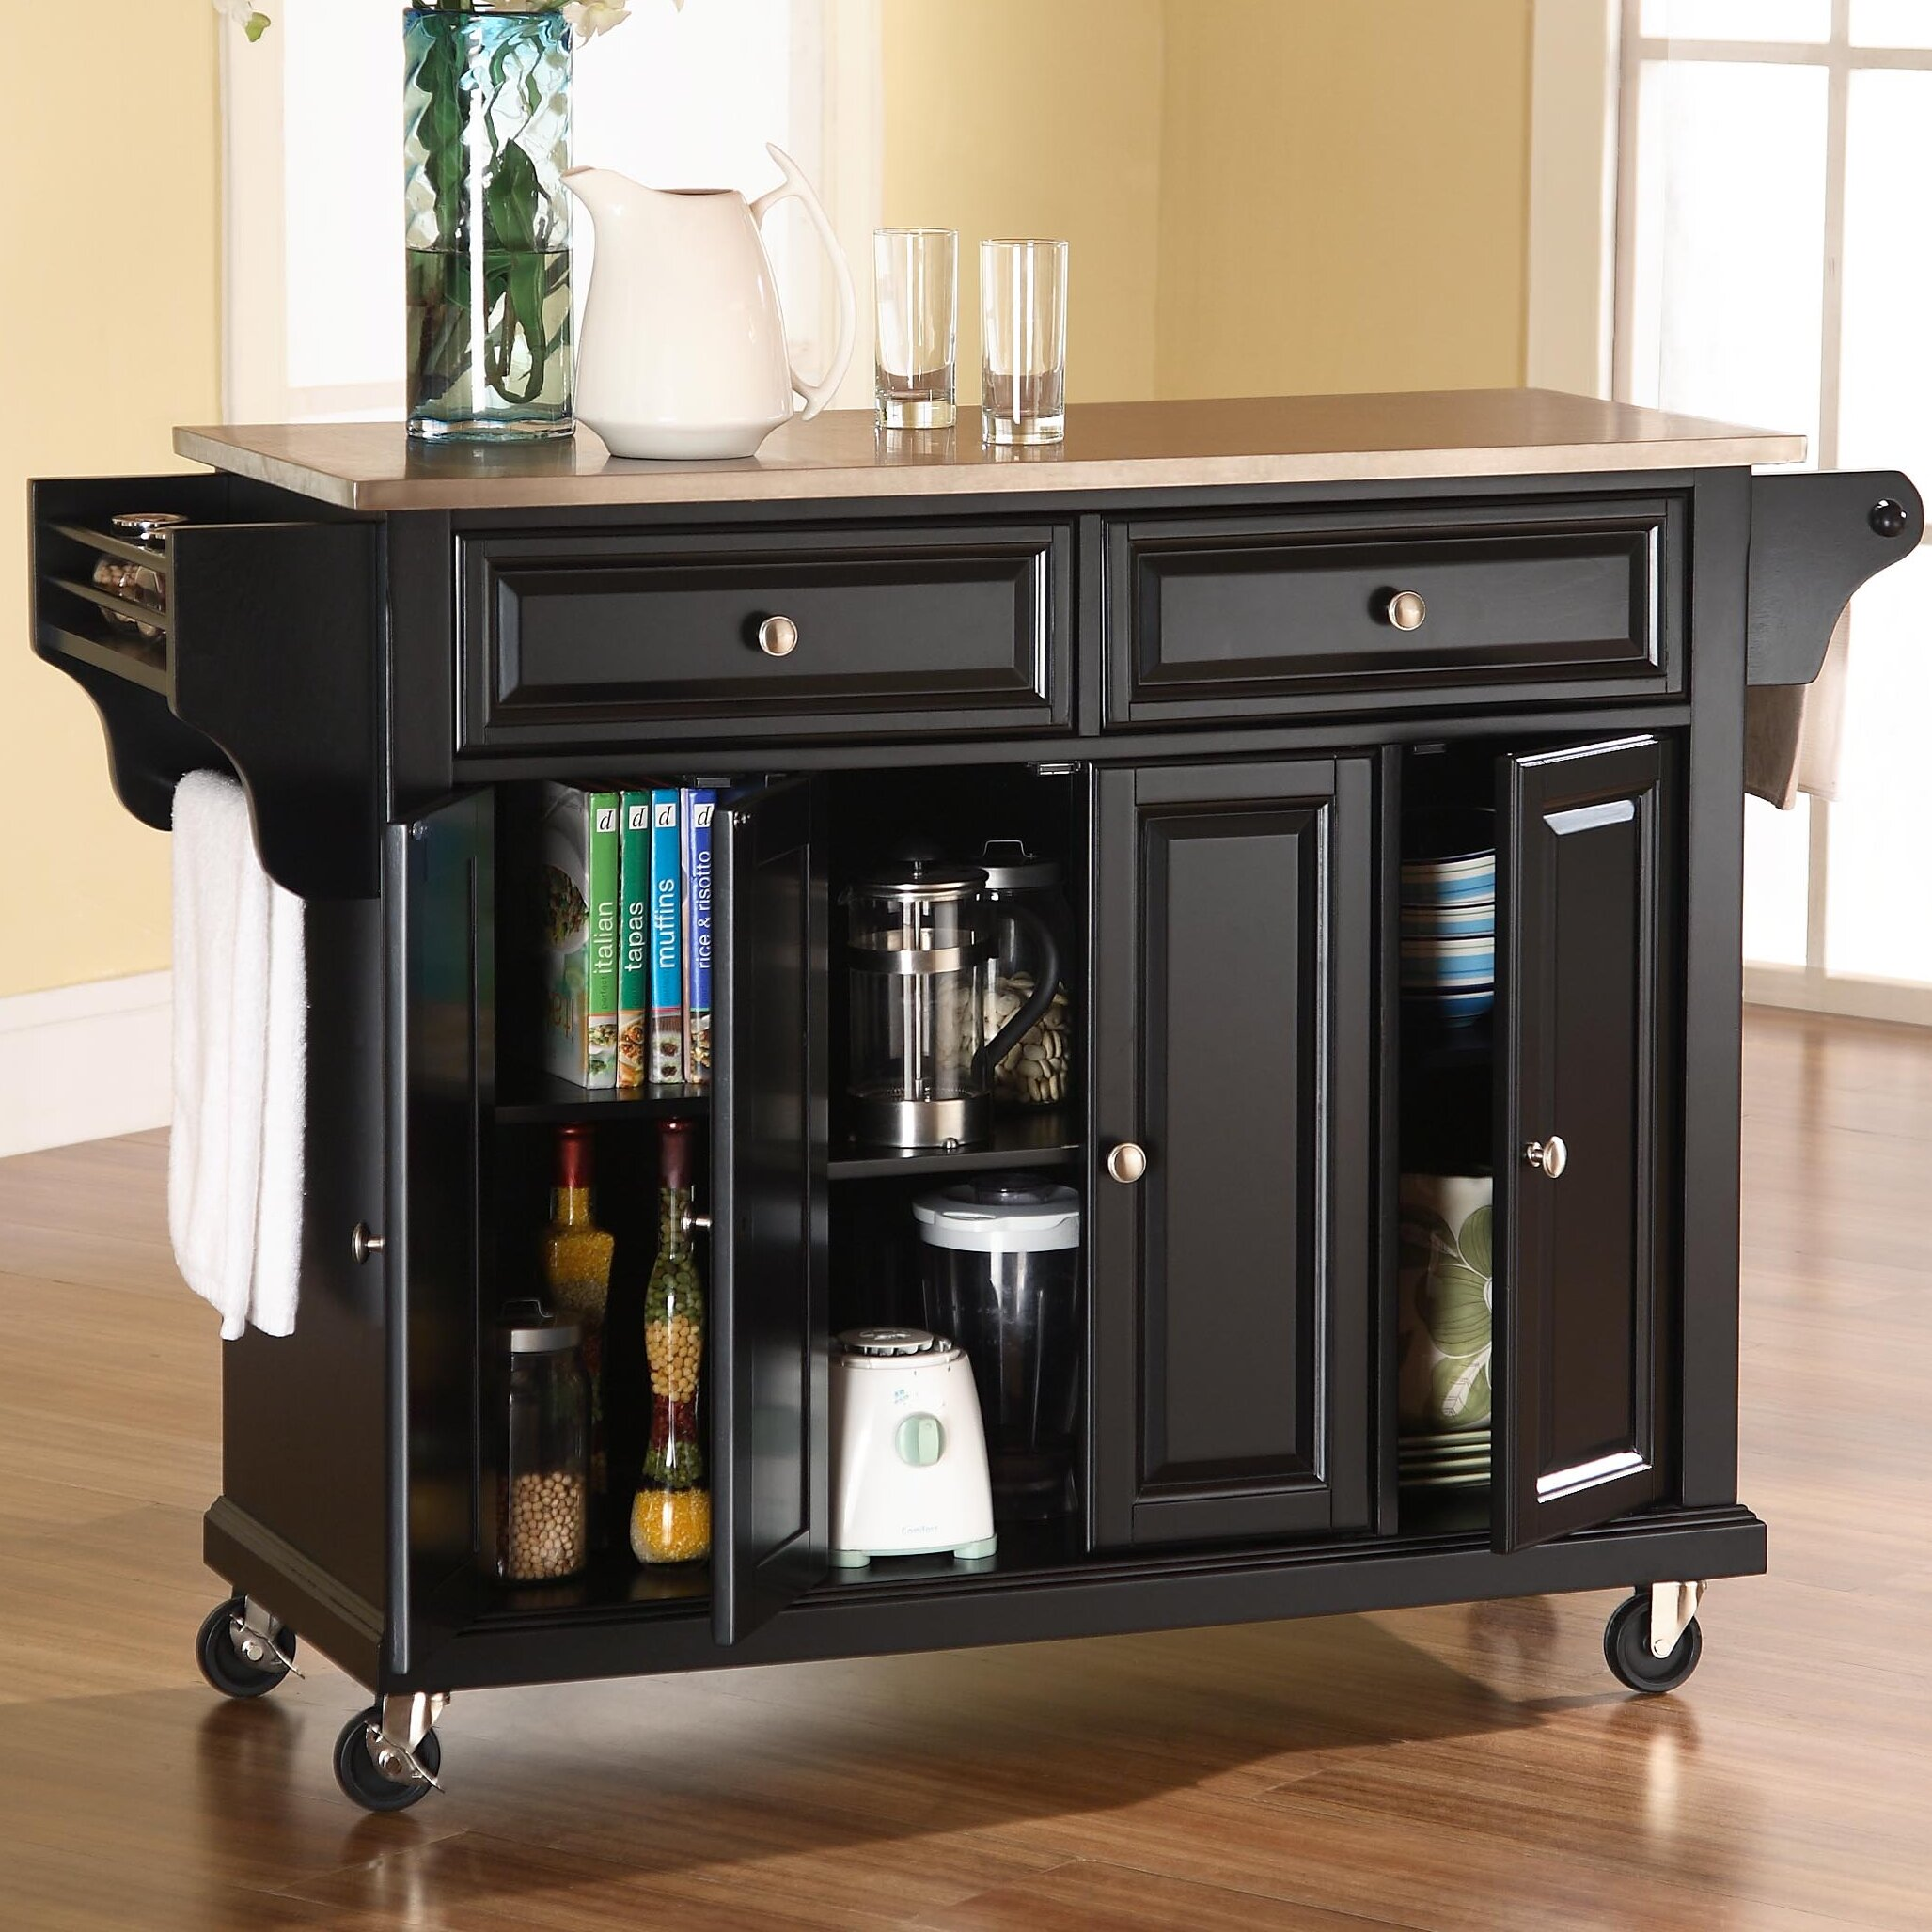 Darby Home Co Pottstown Kitchen Island With Stainless Steel Top Reviews Wayfair